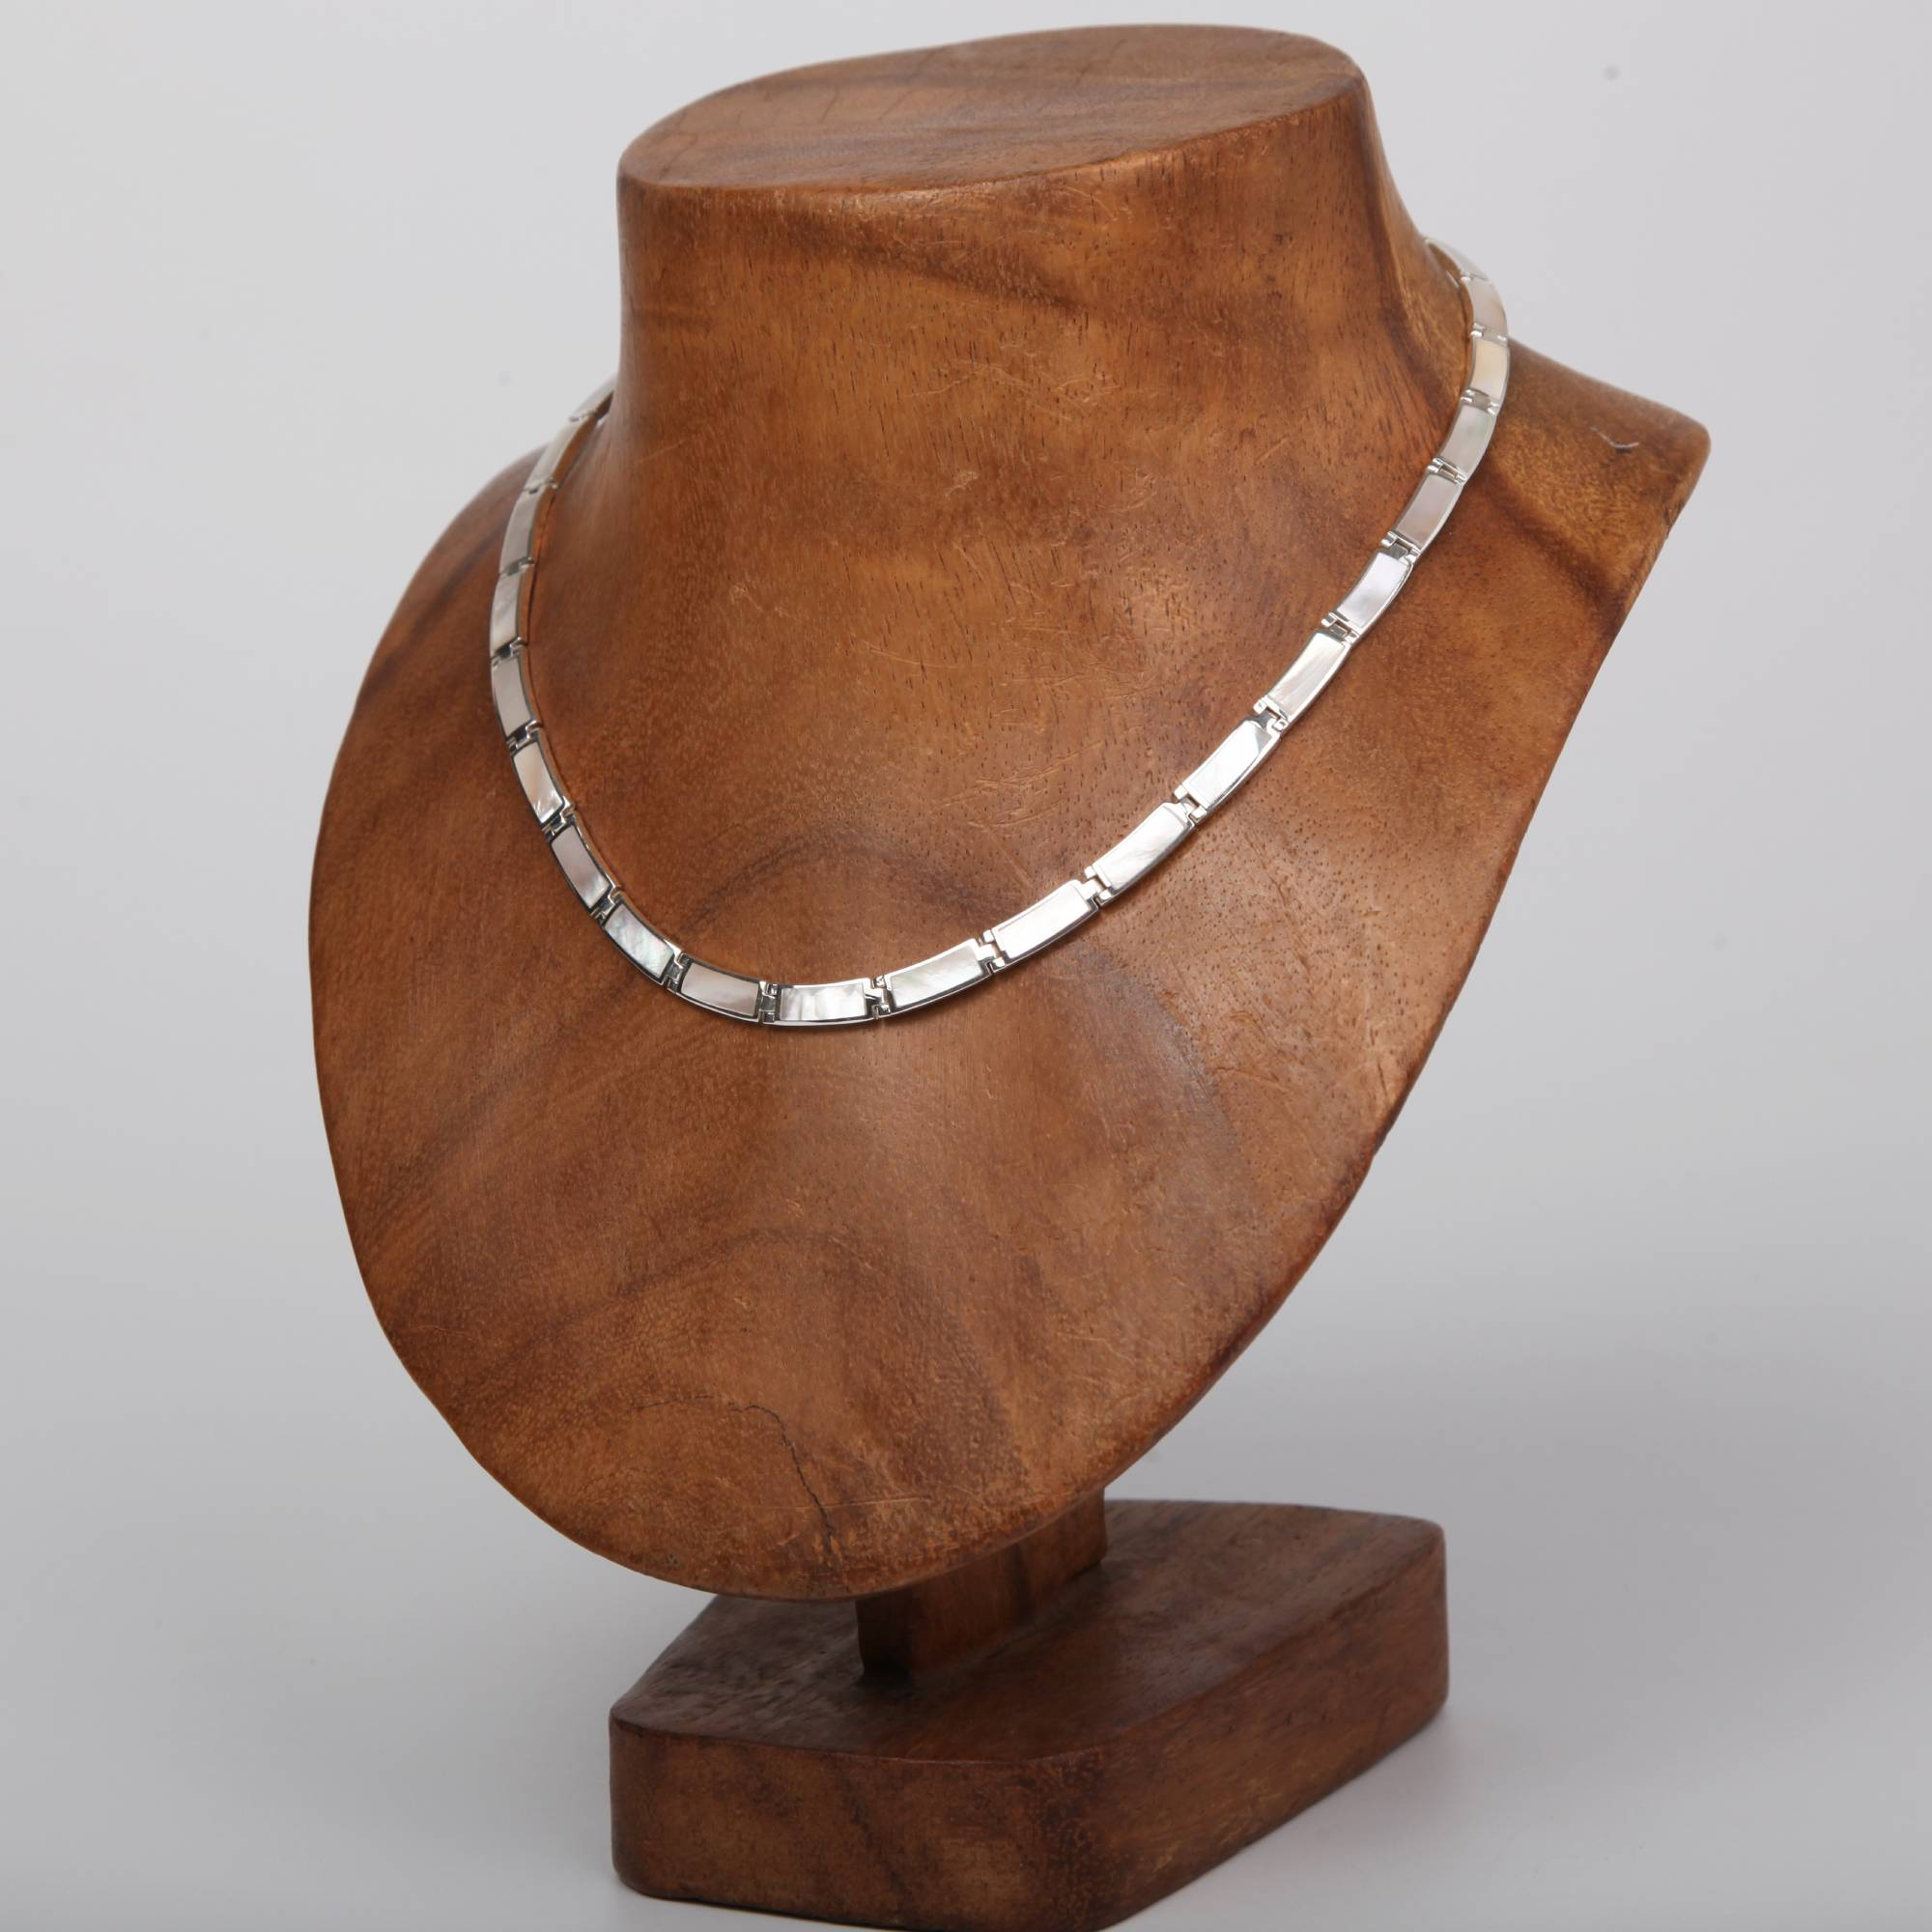 Mother of Pearl Necklace with Sterling Silver